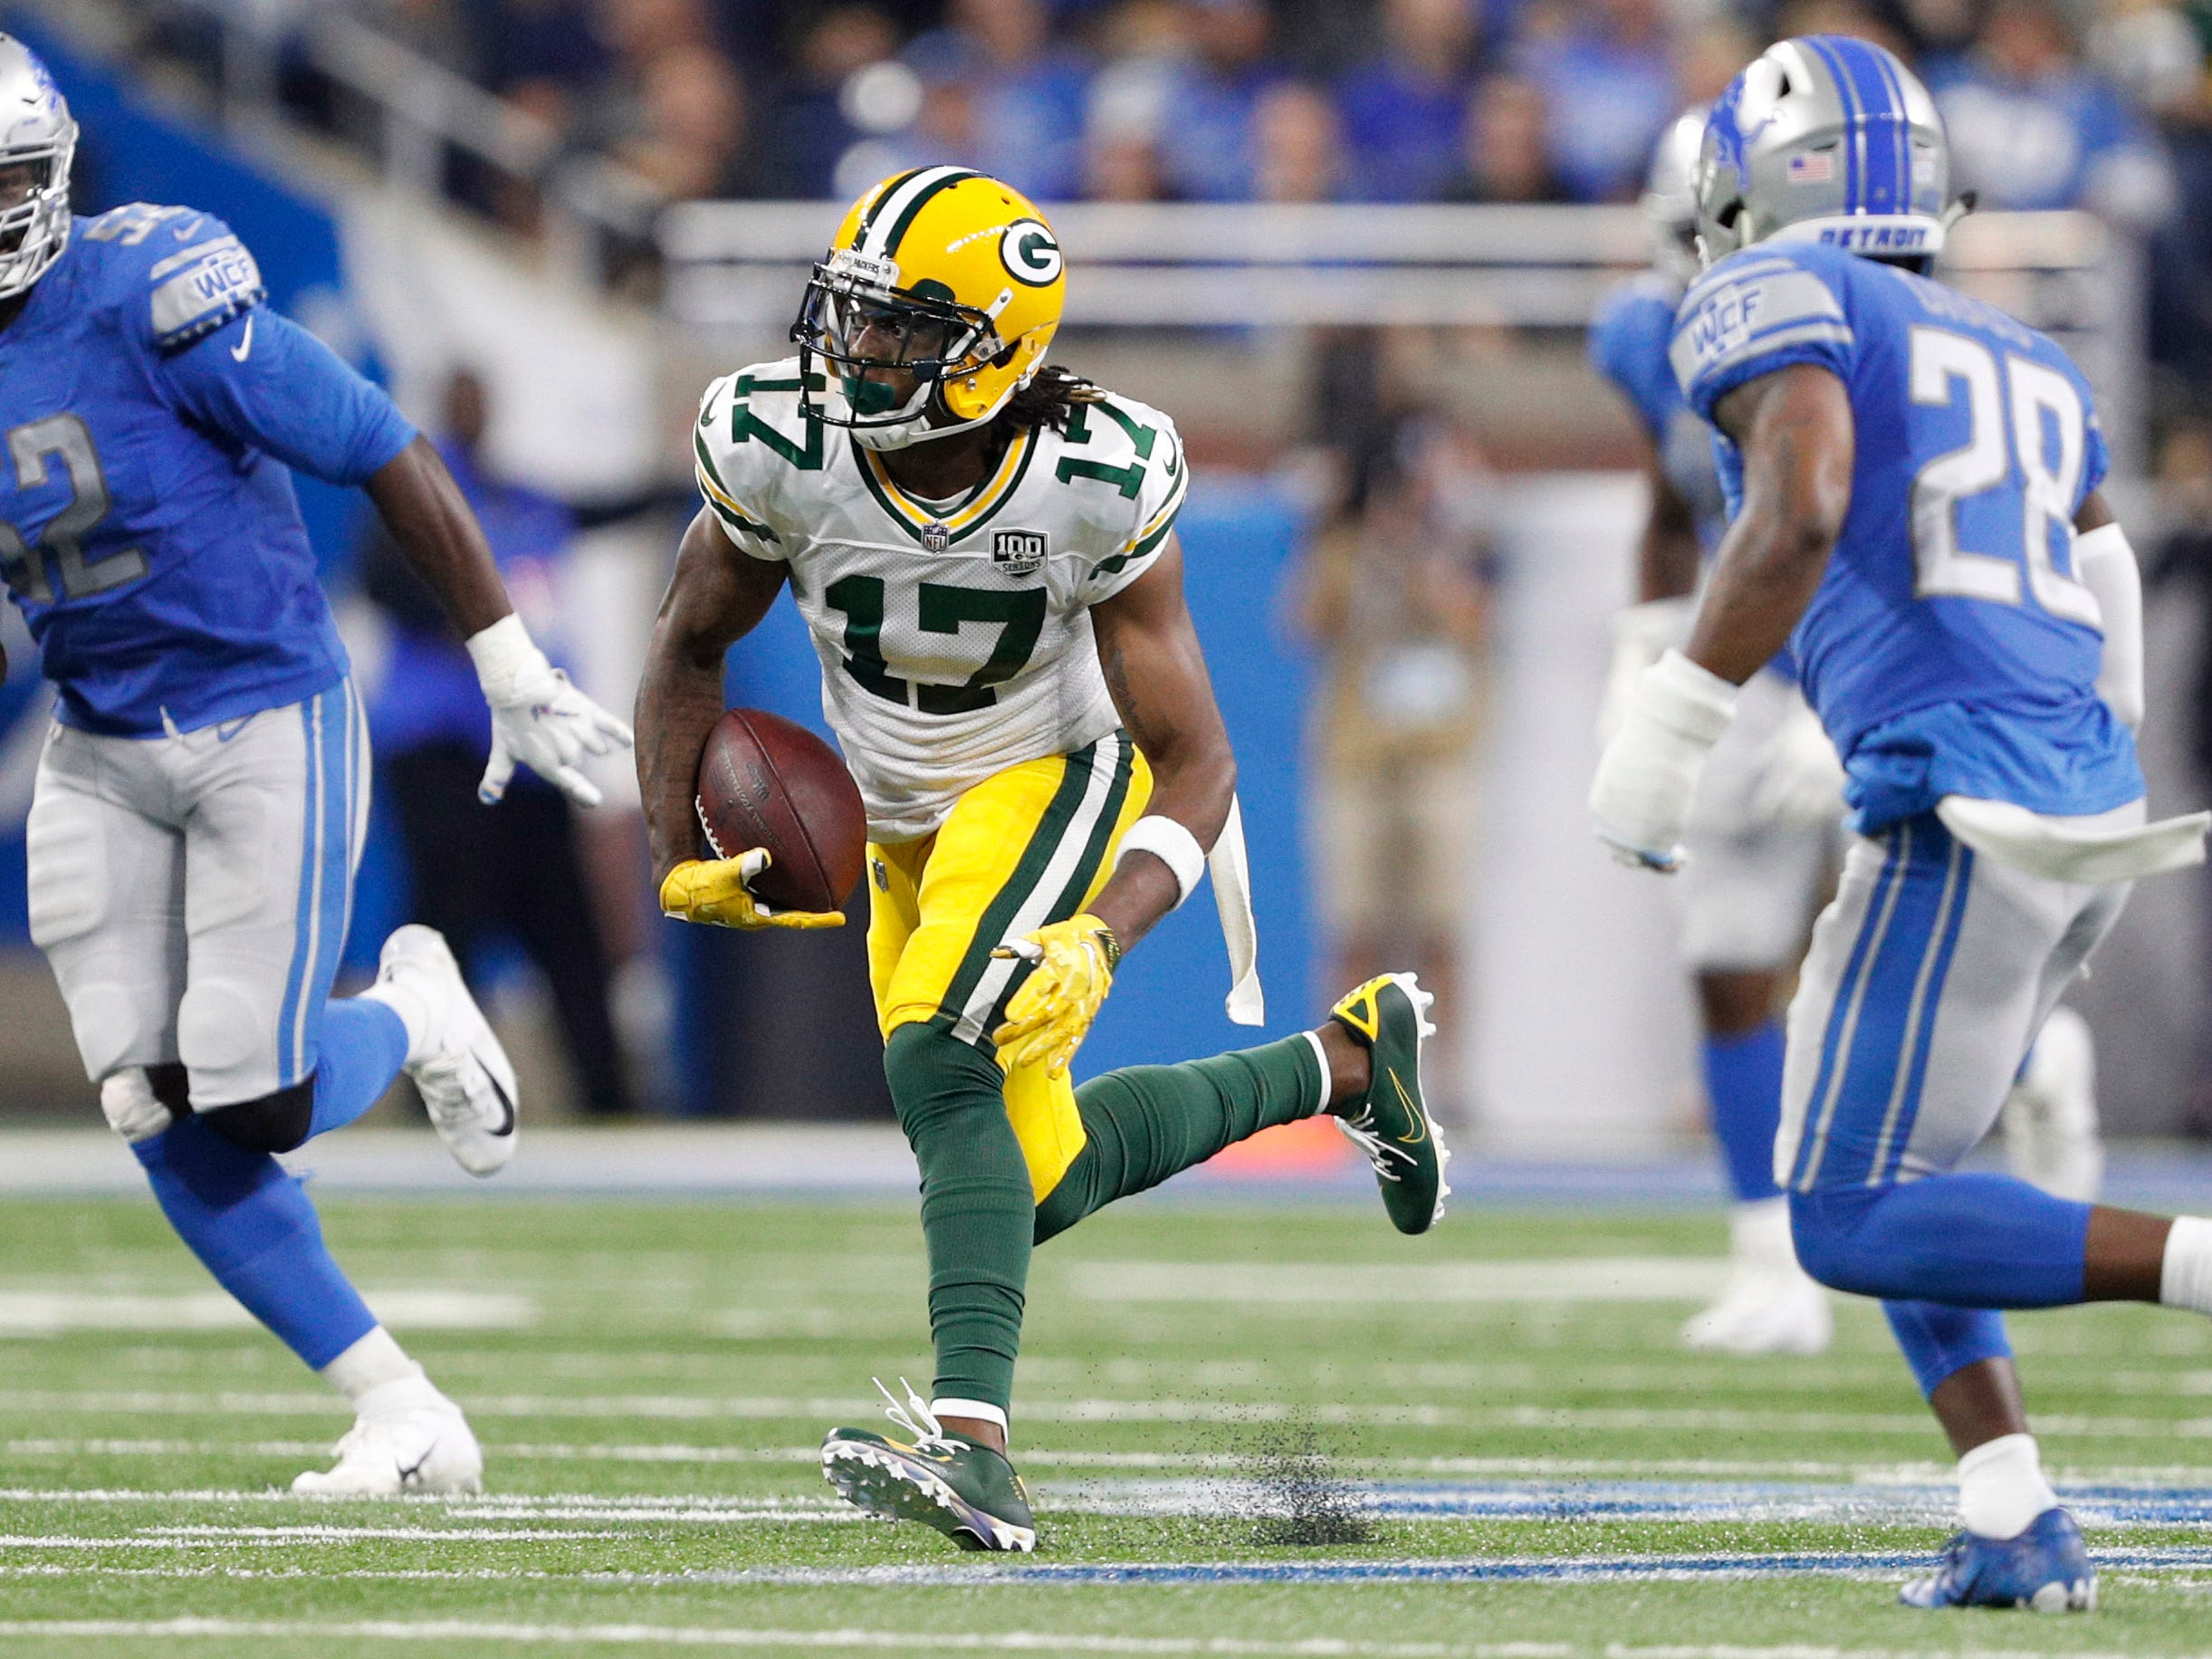 Oct 7, 2018; Detroit, MI, USA; Green Bay Packers wide receiver Davante Adams (17) runs after a catch against Detroit Lions strong safety Quandre Diggs (28) and linebacker Christian Jones (52) during the second quarter at Ford Field.